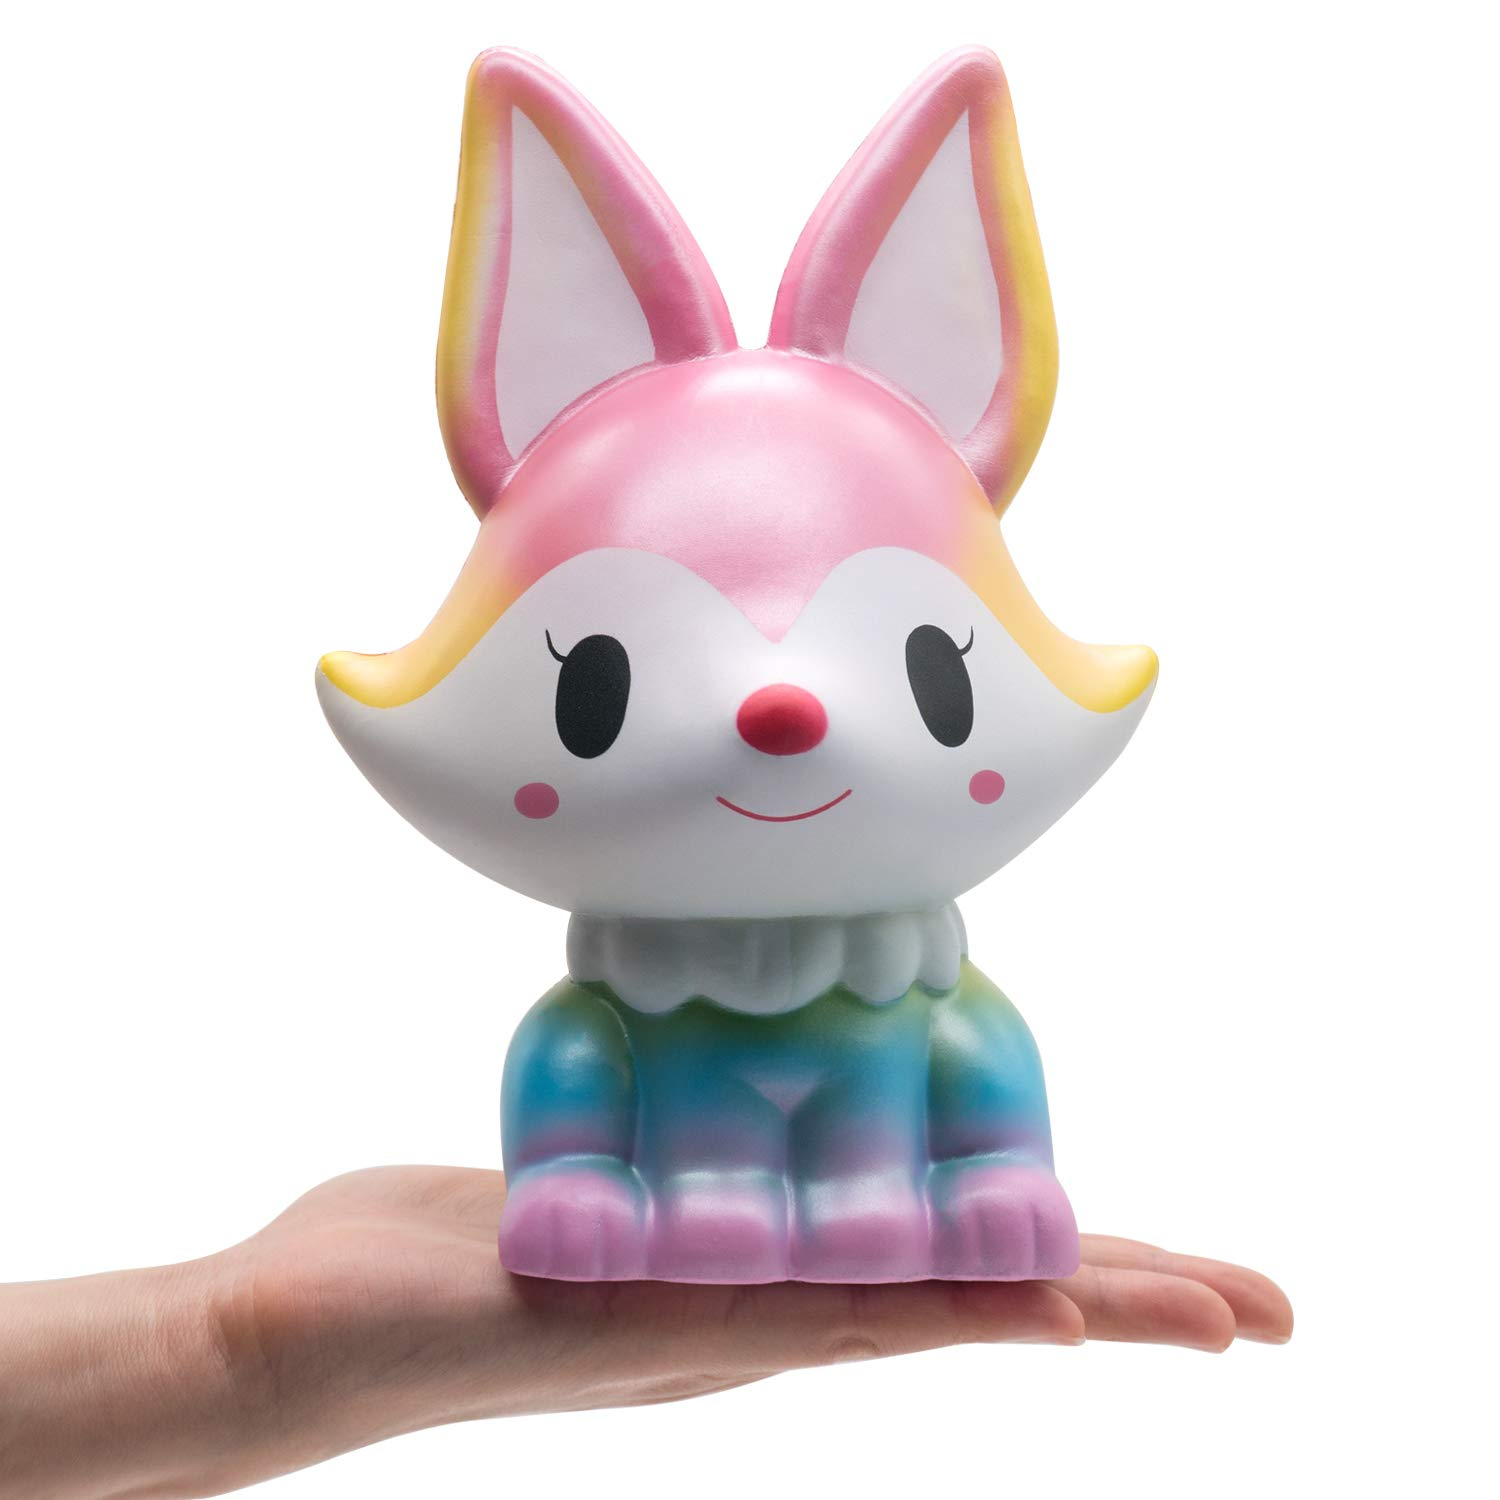 Fox Squishies Jumbo 8.1 Inch - Crefun NM9214 (2019 New) Giant Big Huge Squishies Slow Rising Cute Squishy Animals Gifts for Kid Stress Relief Toys, Super Soft Cream Scented Kawaii, CPSC Certified,24-h